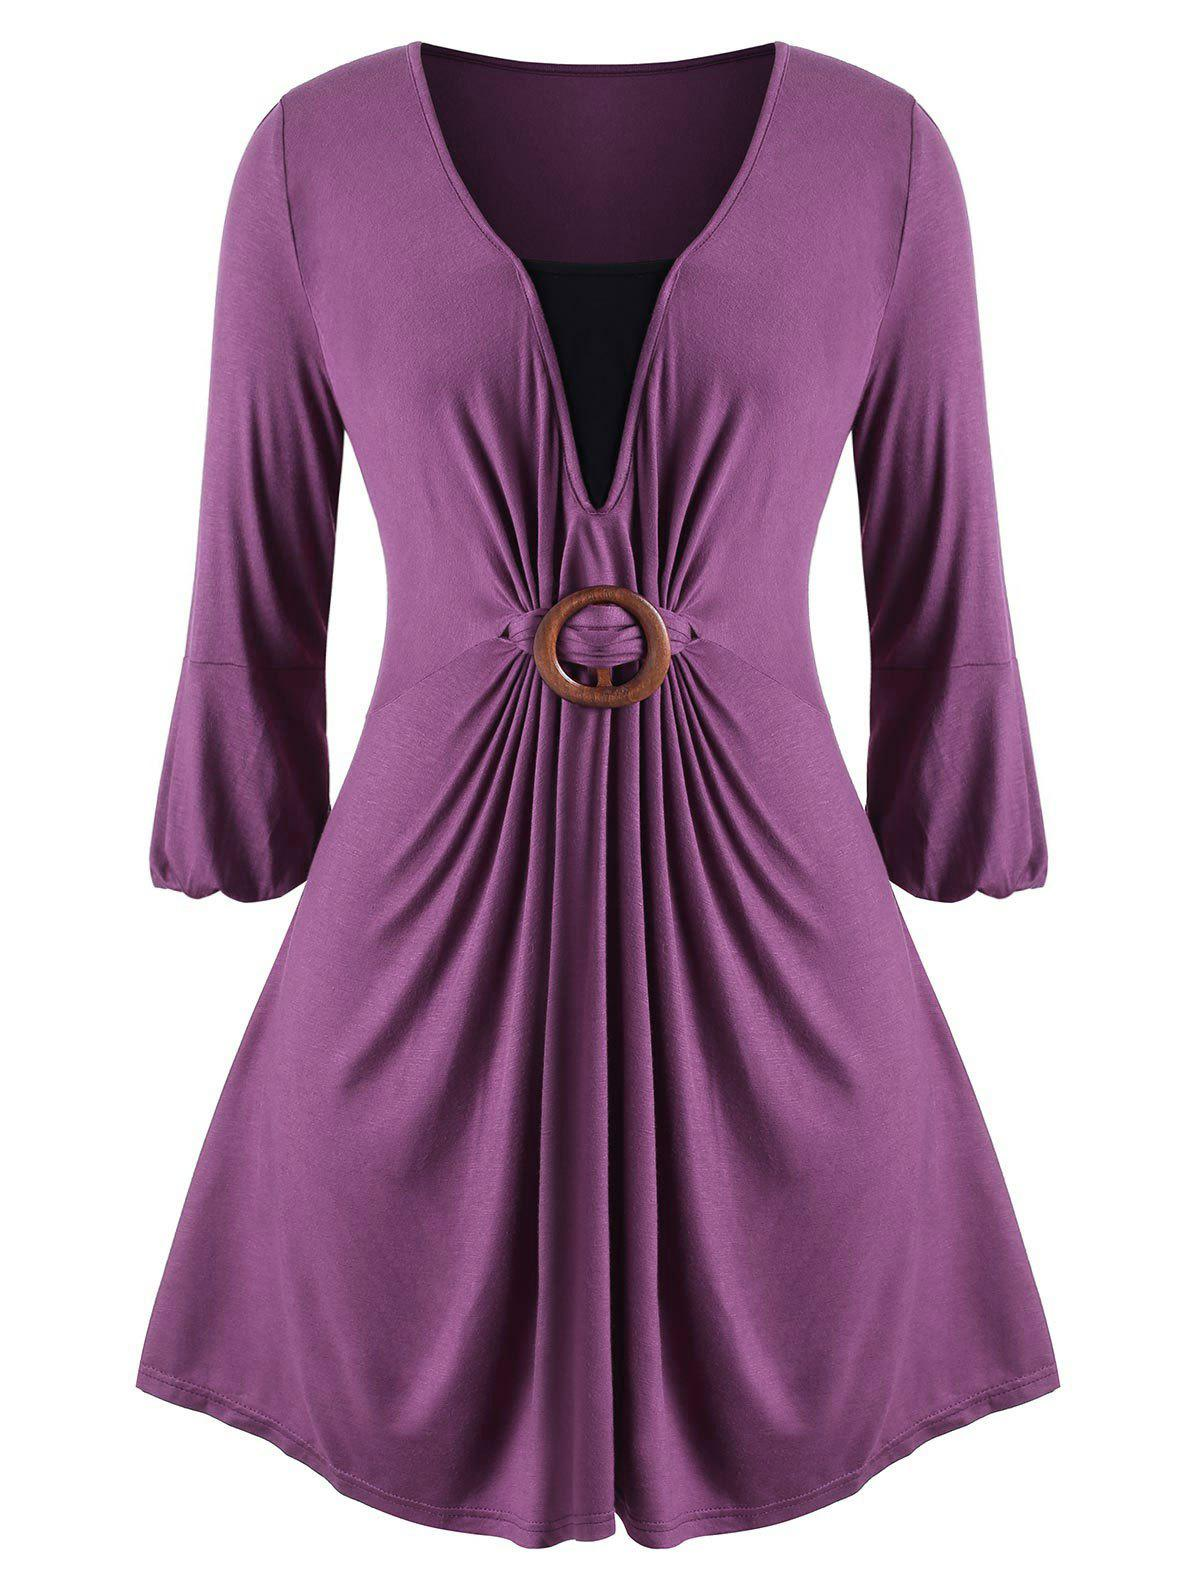 O Ring Contrast Skirted Longline Plus Size Top - PURPLE 1X